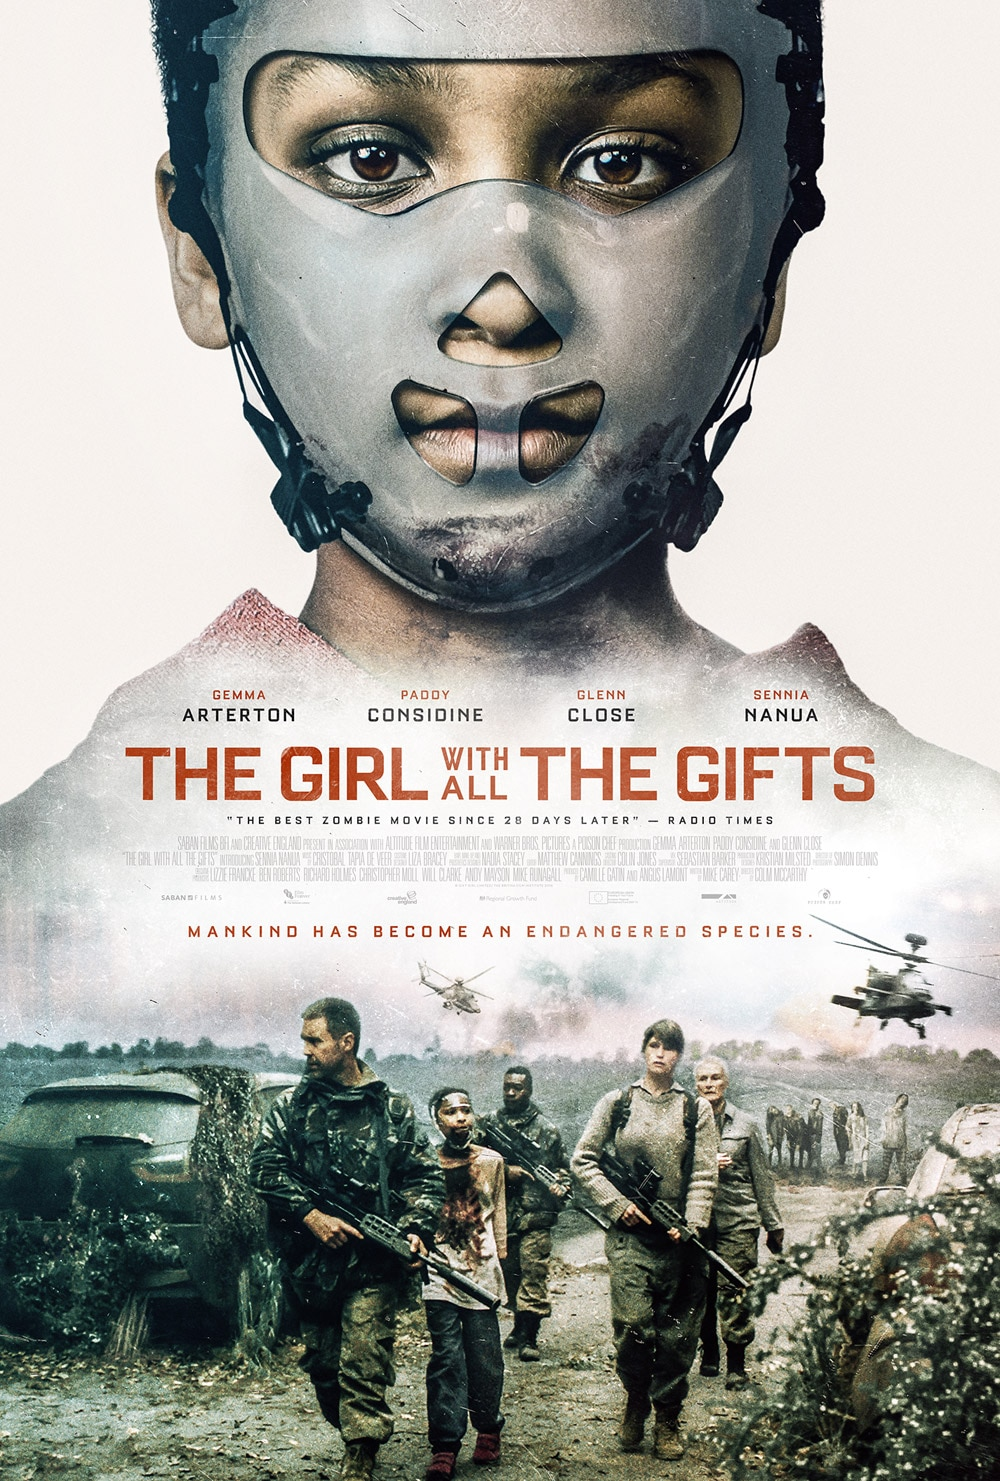 girl with all gifts - The Girl With All the Gifts - New Clip, Stills, and More!